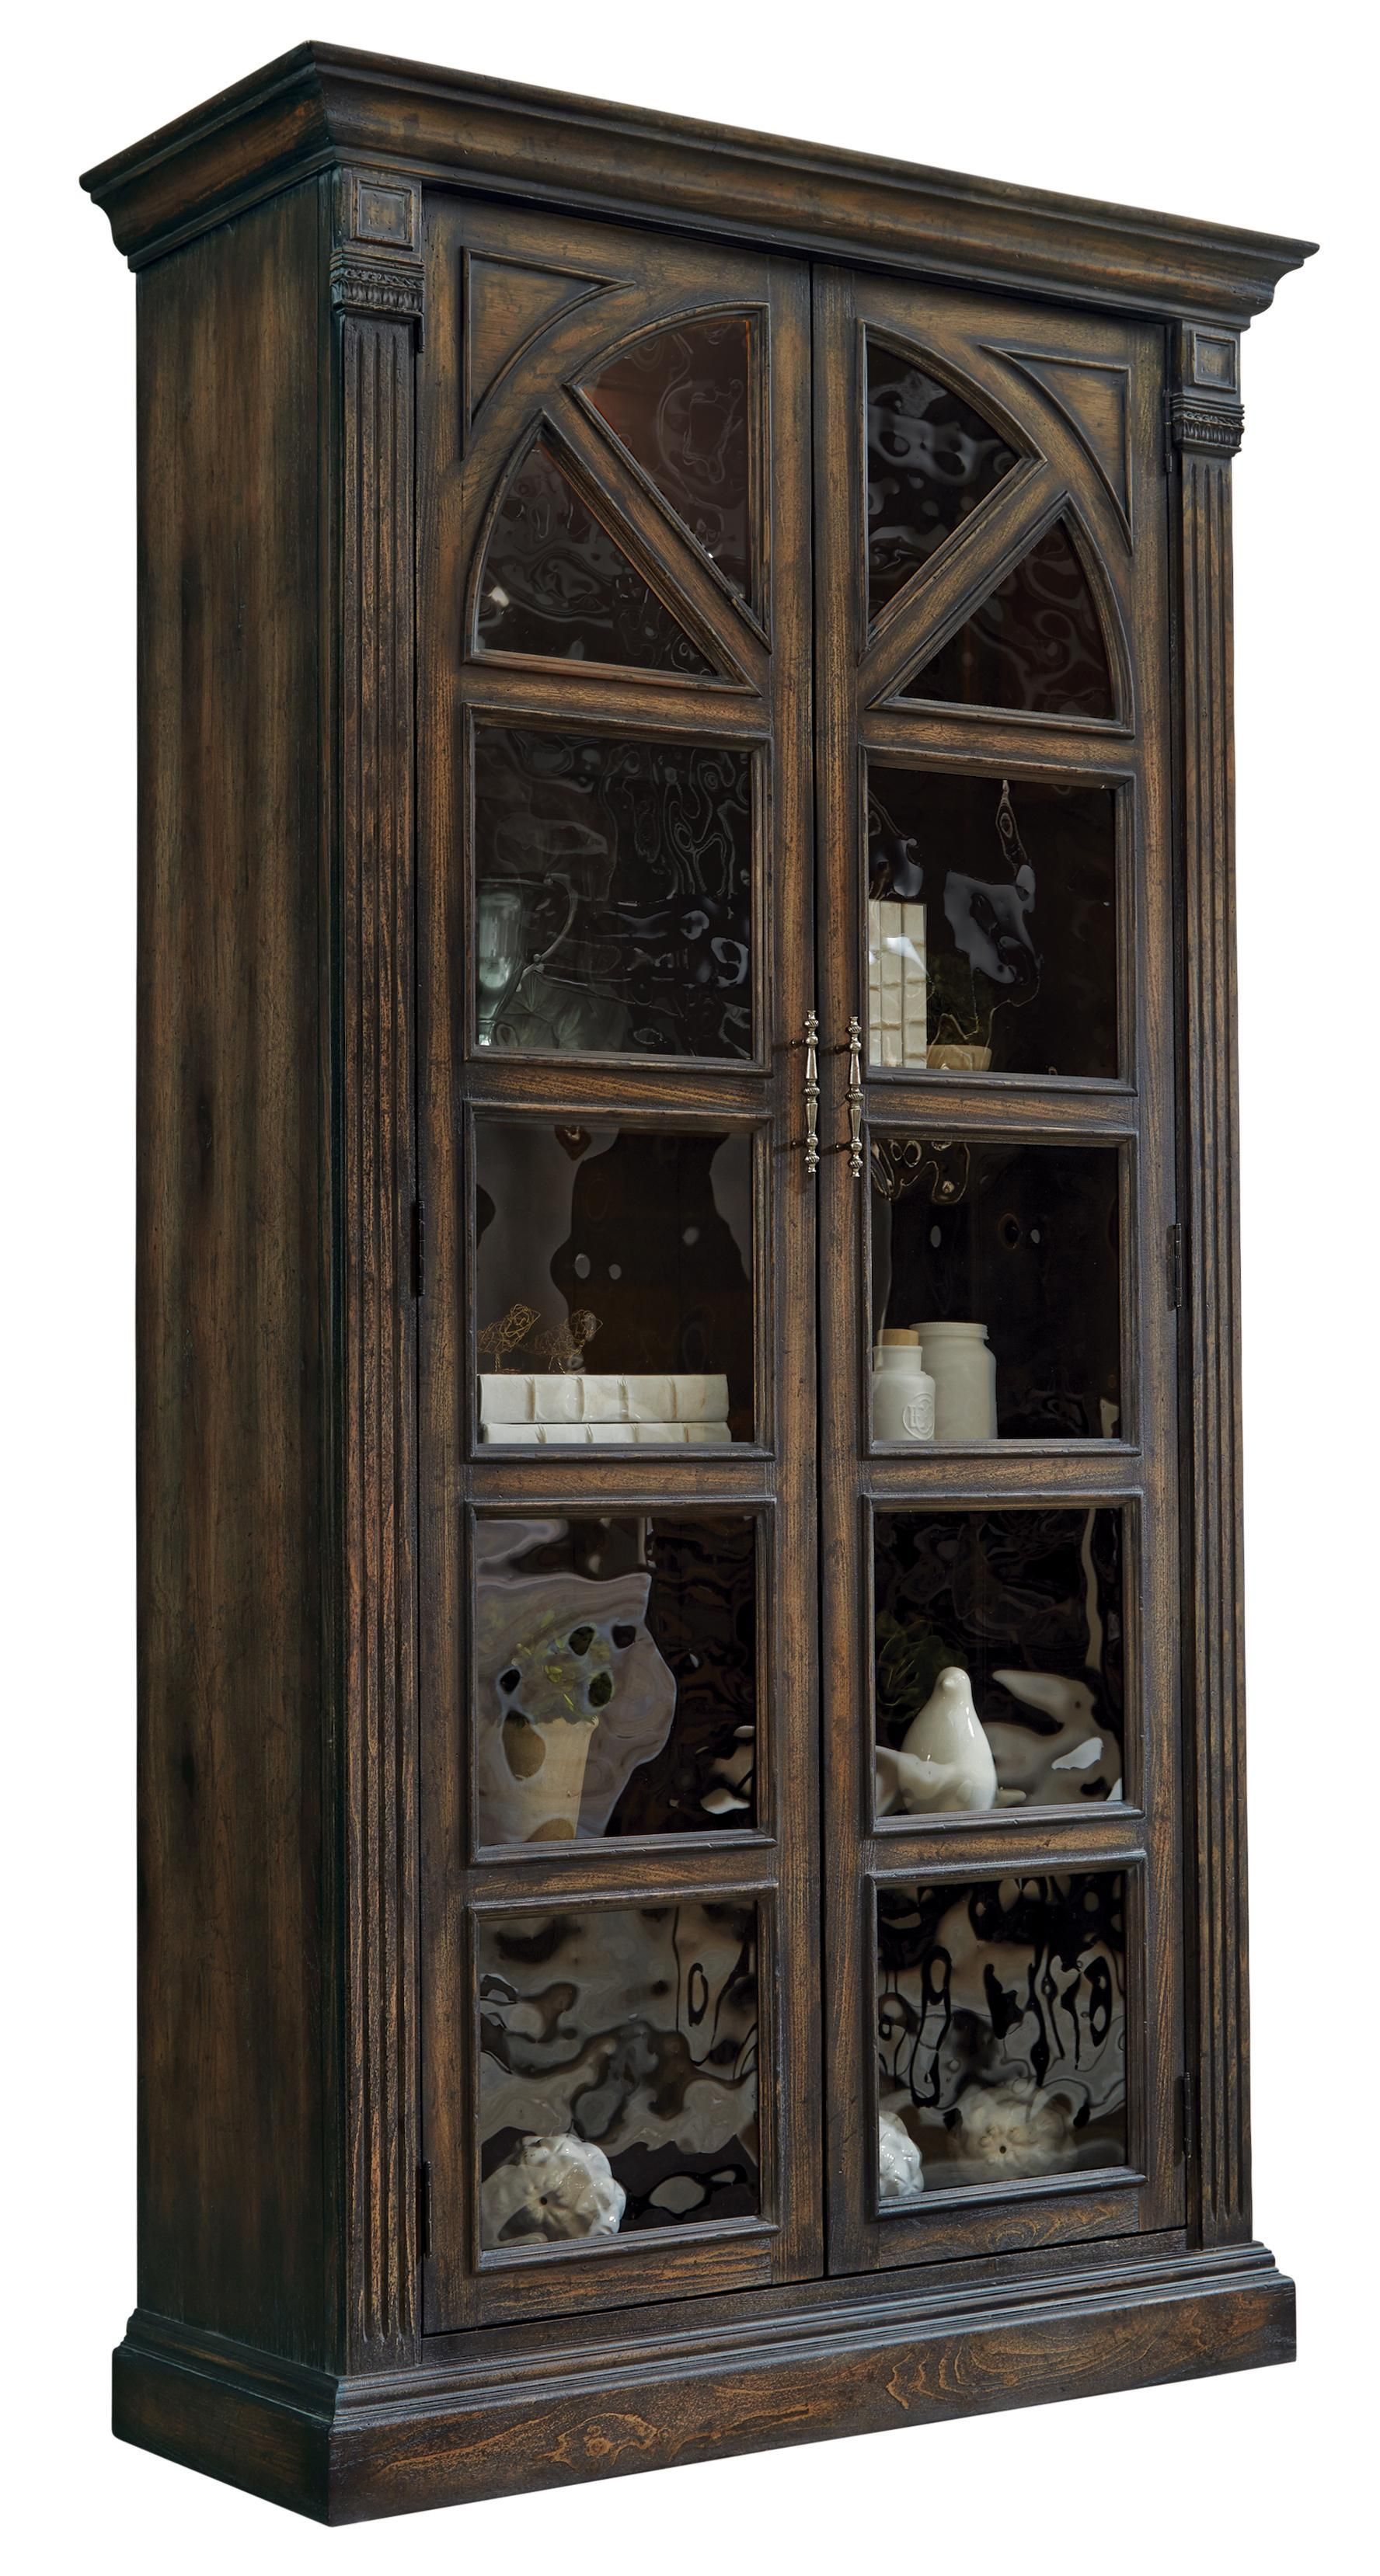 Pulaski Furniture Curios Amalfi Curio China Cabinet - Item Number: 203011